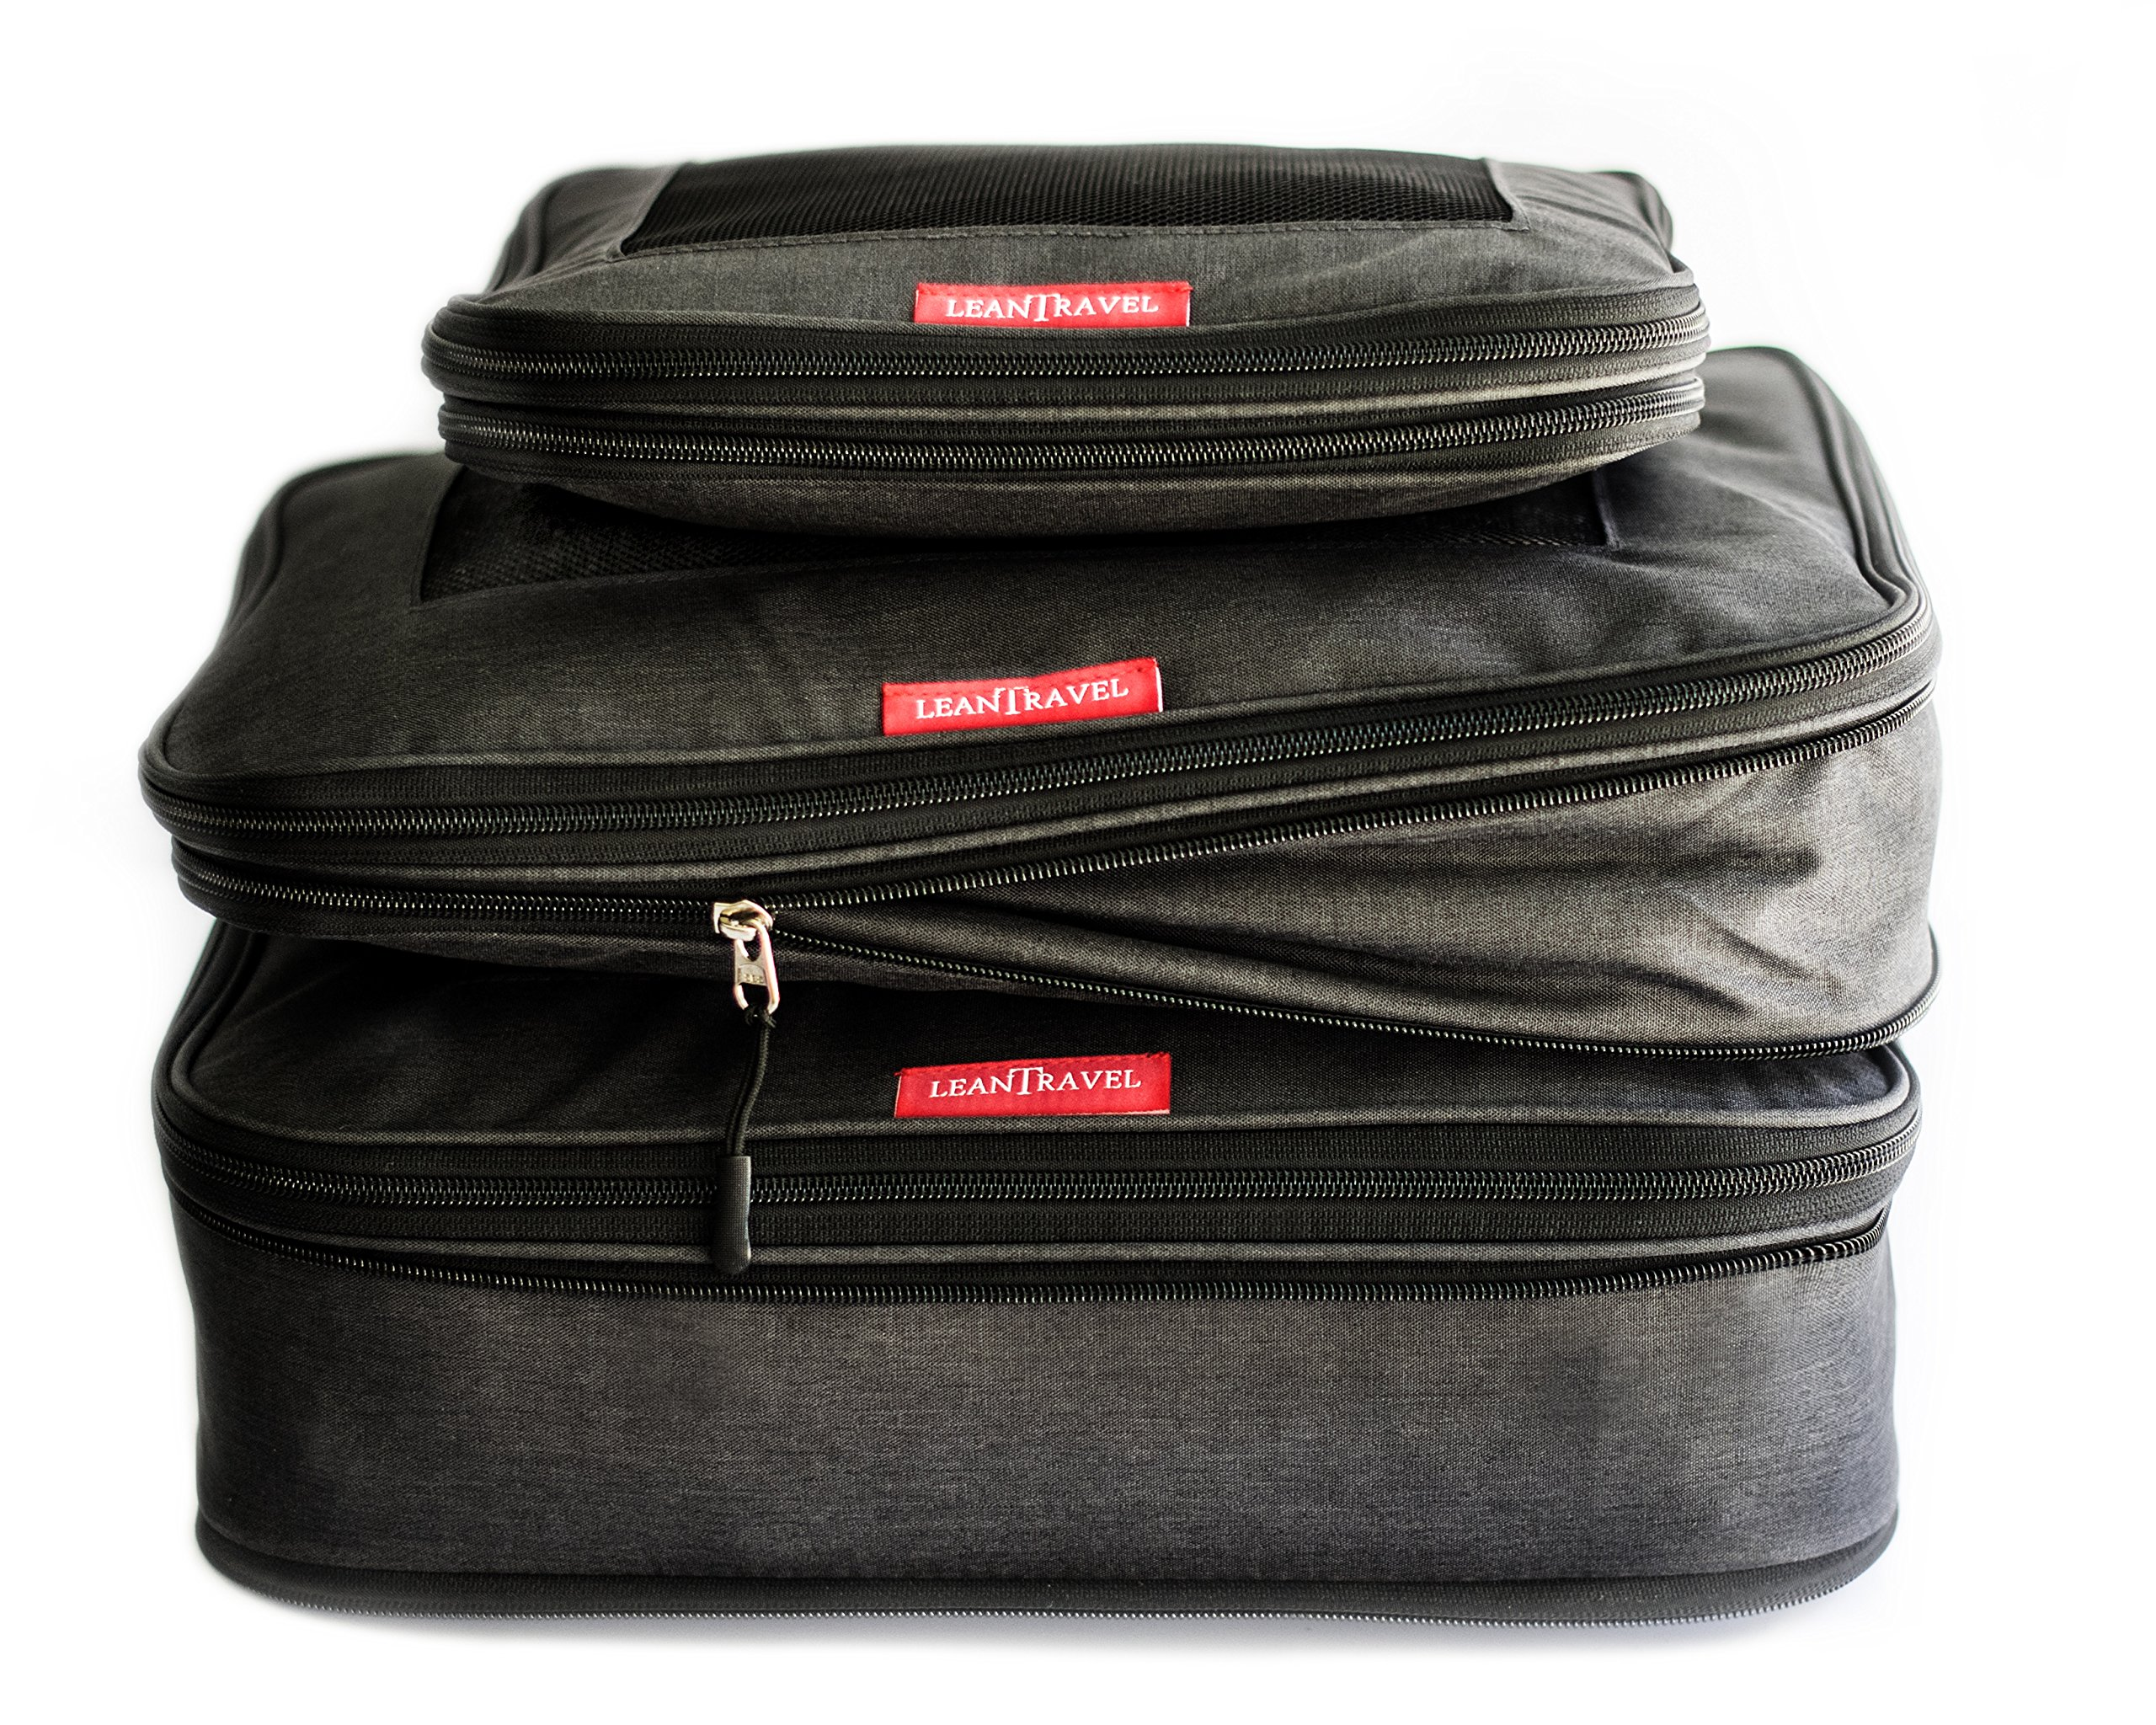 LeanTravel Compression Packing Cubes Luggage Organizers for Travel W/Double Zipper (3) Set - Color Black